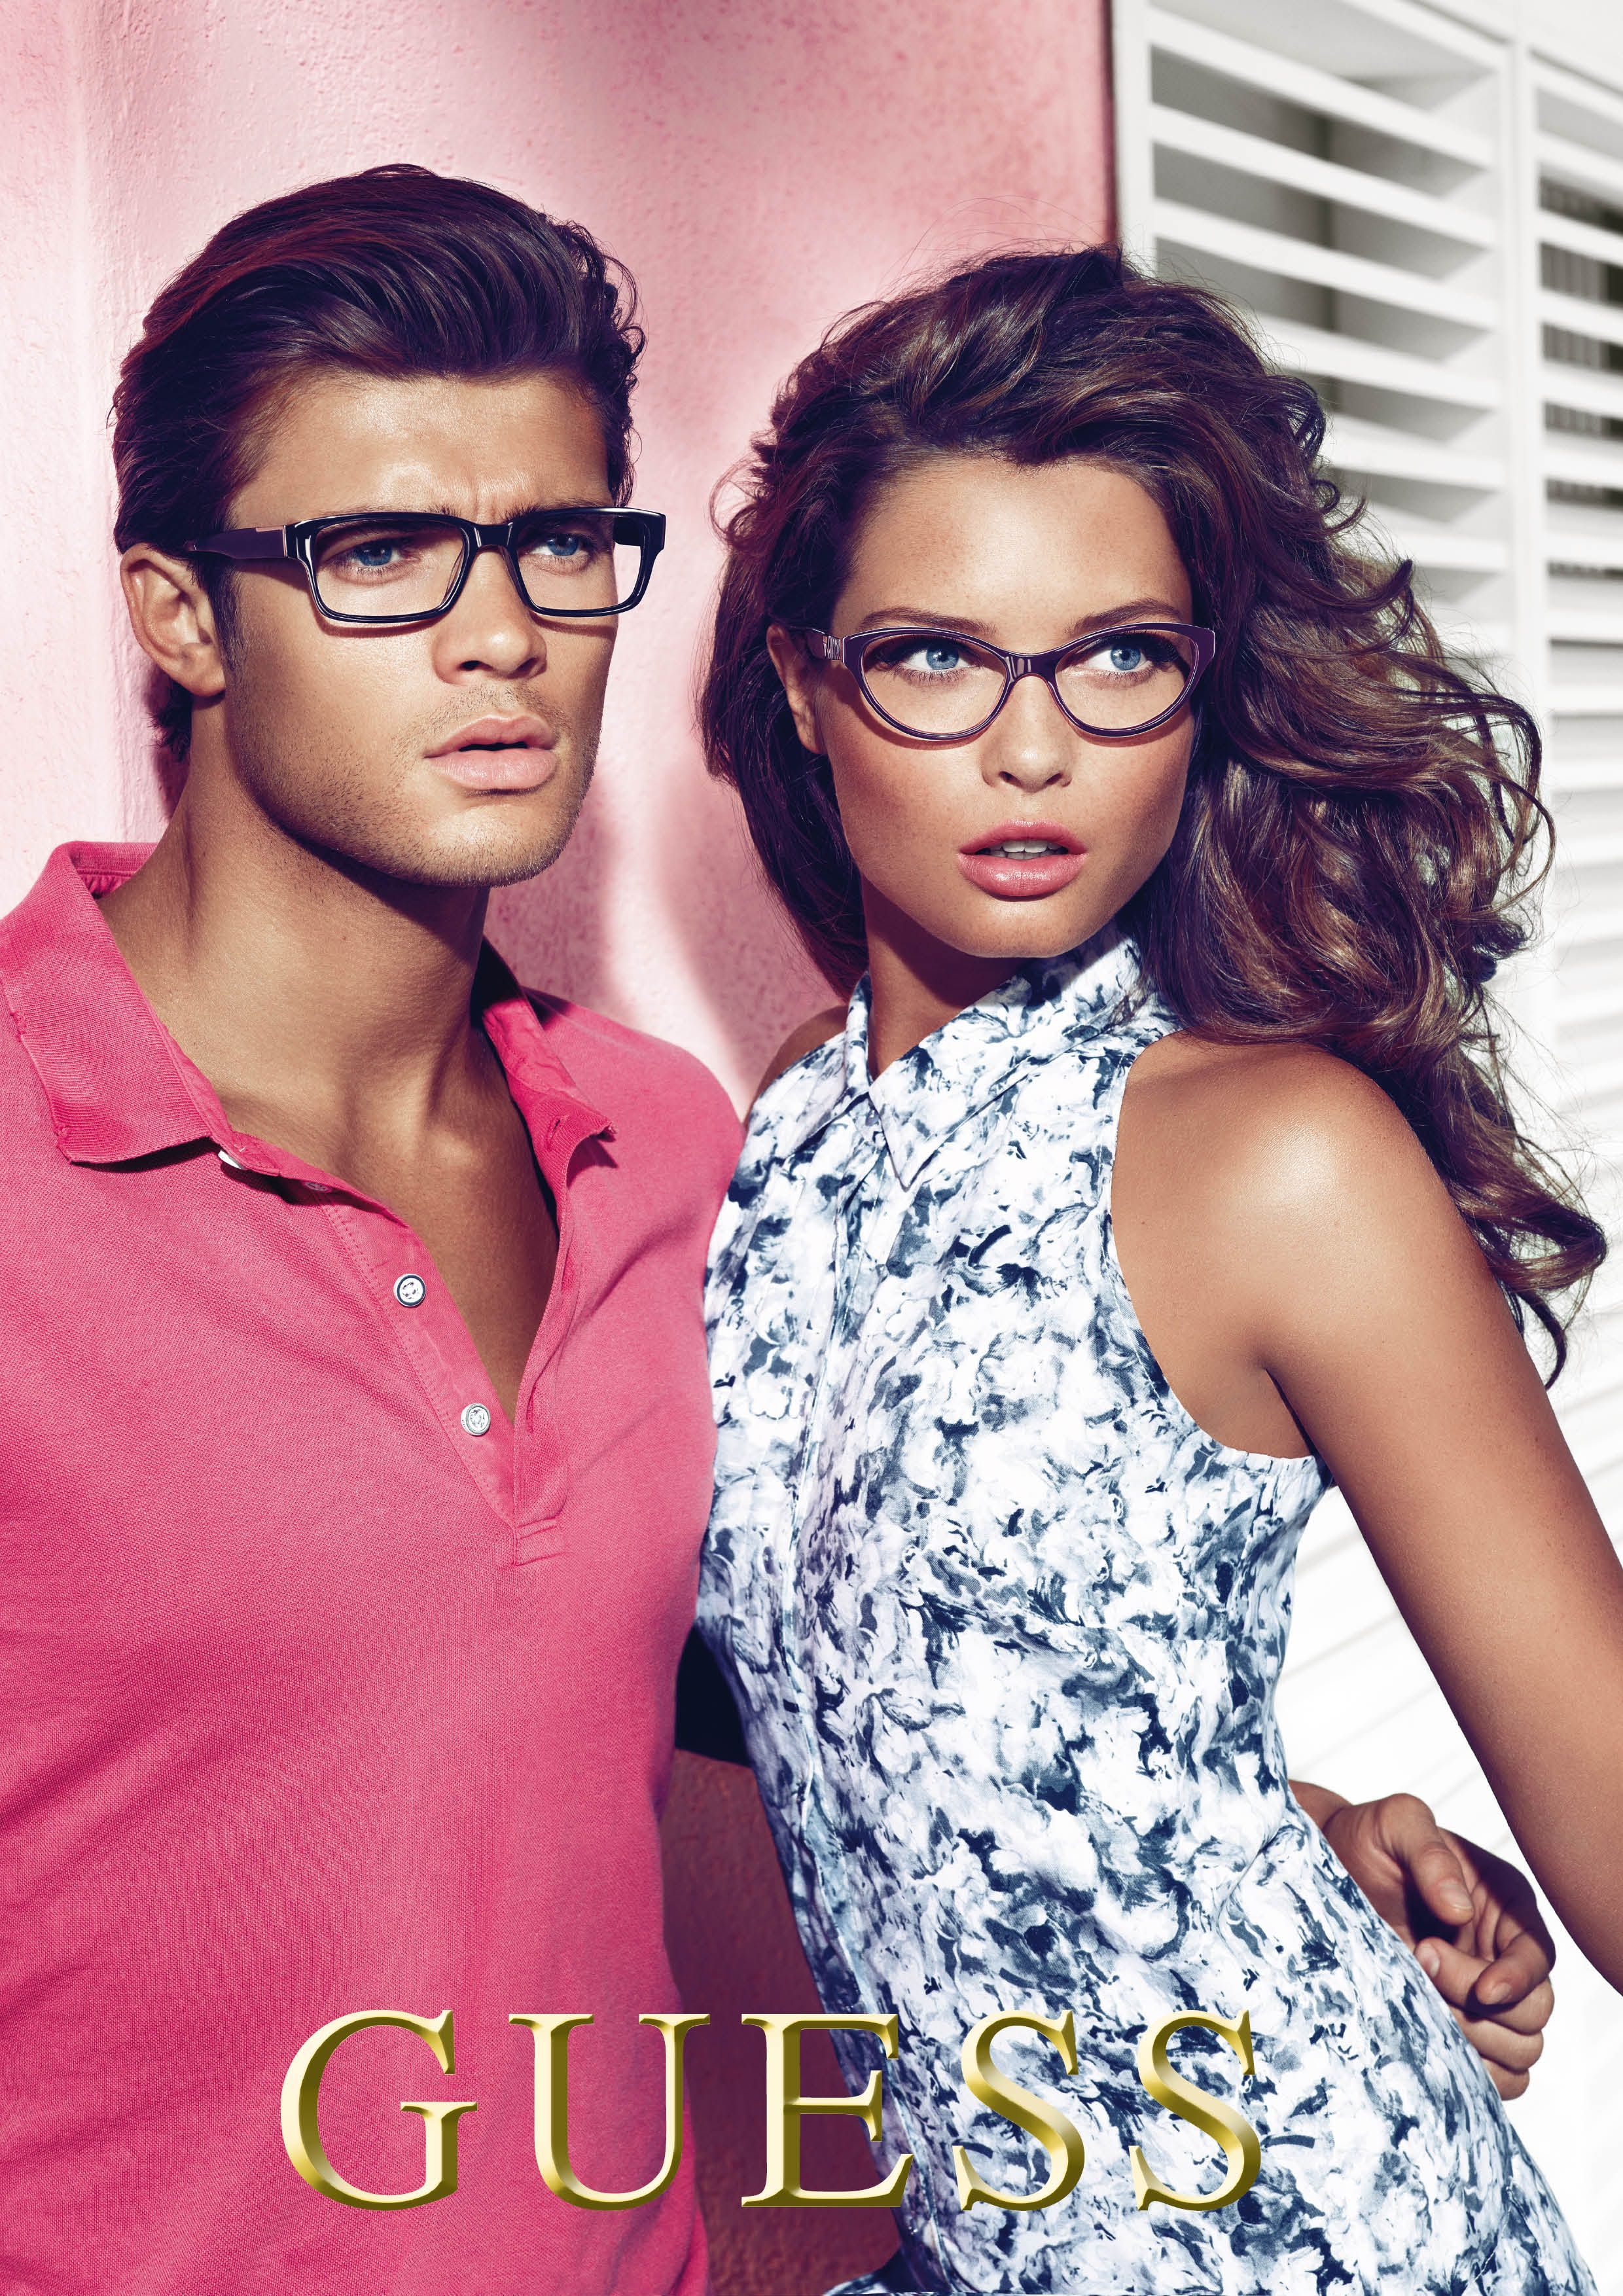 7cae816ee272 Guess Eyewear now available at Glasses Galore